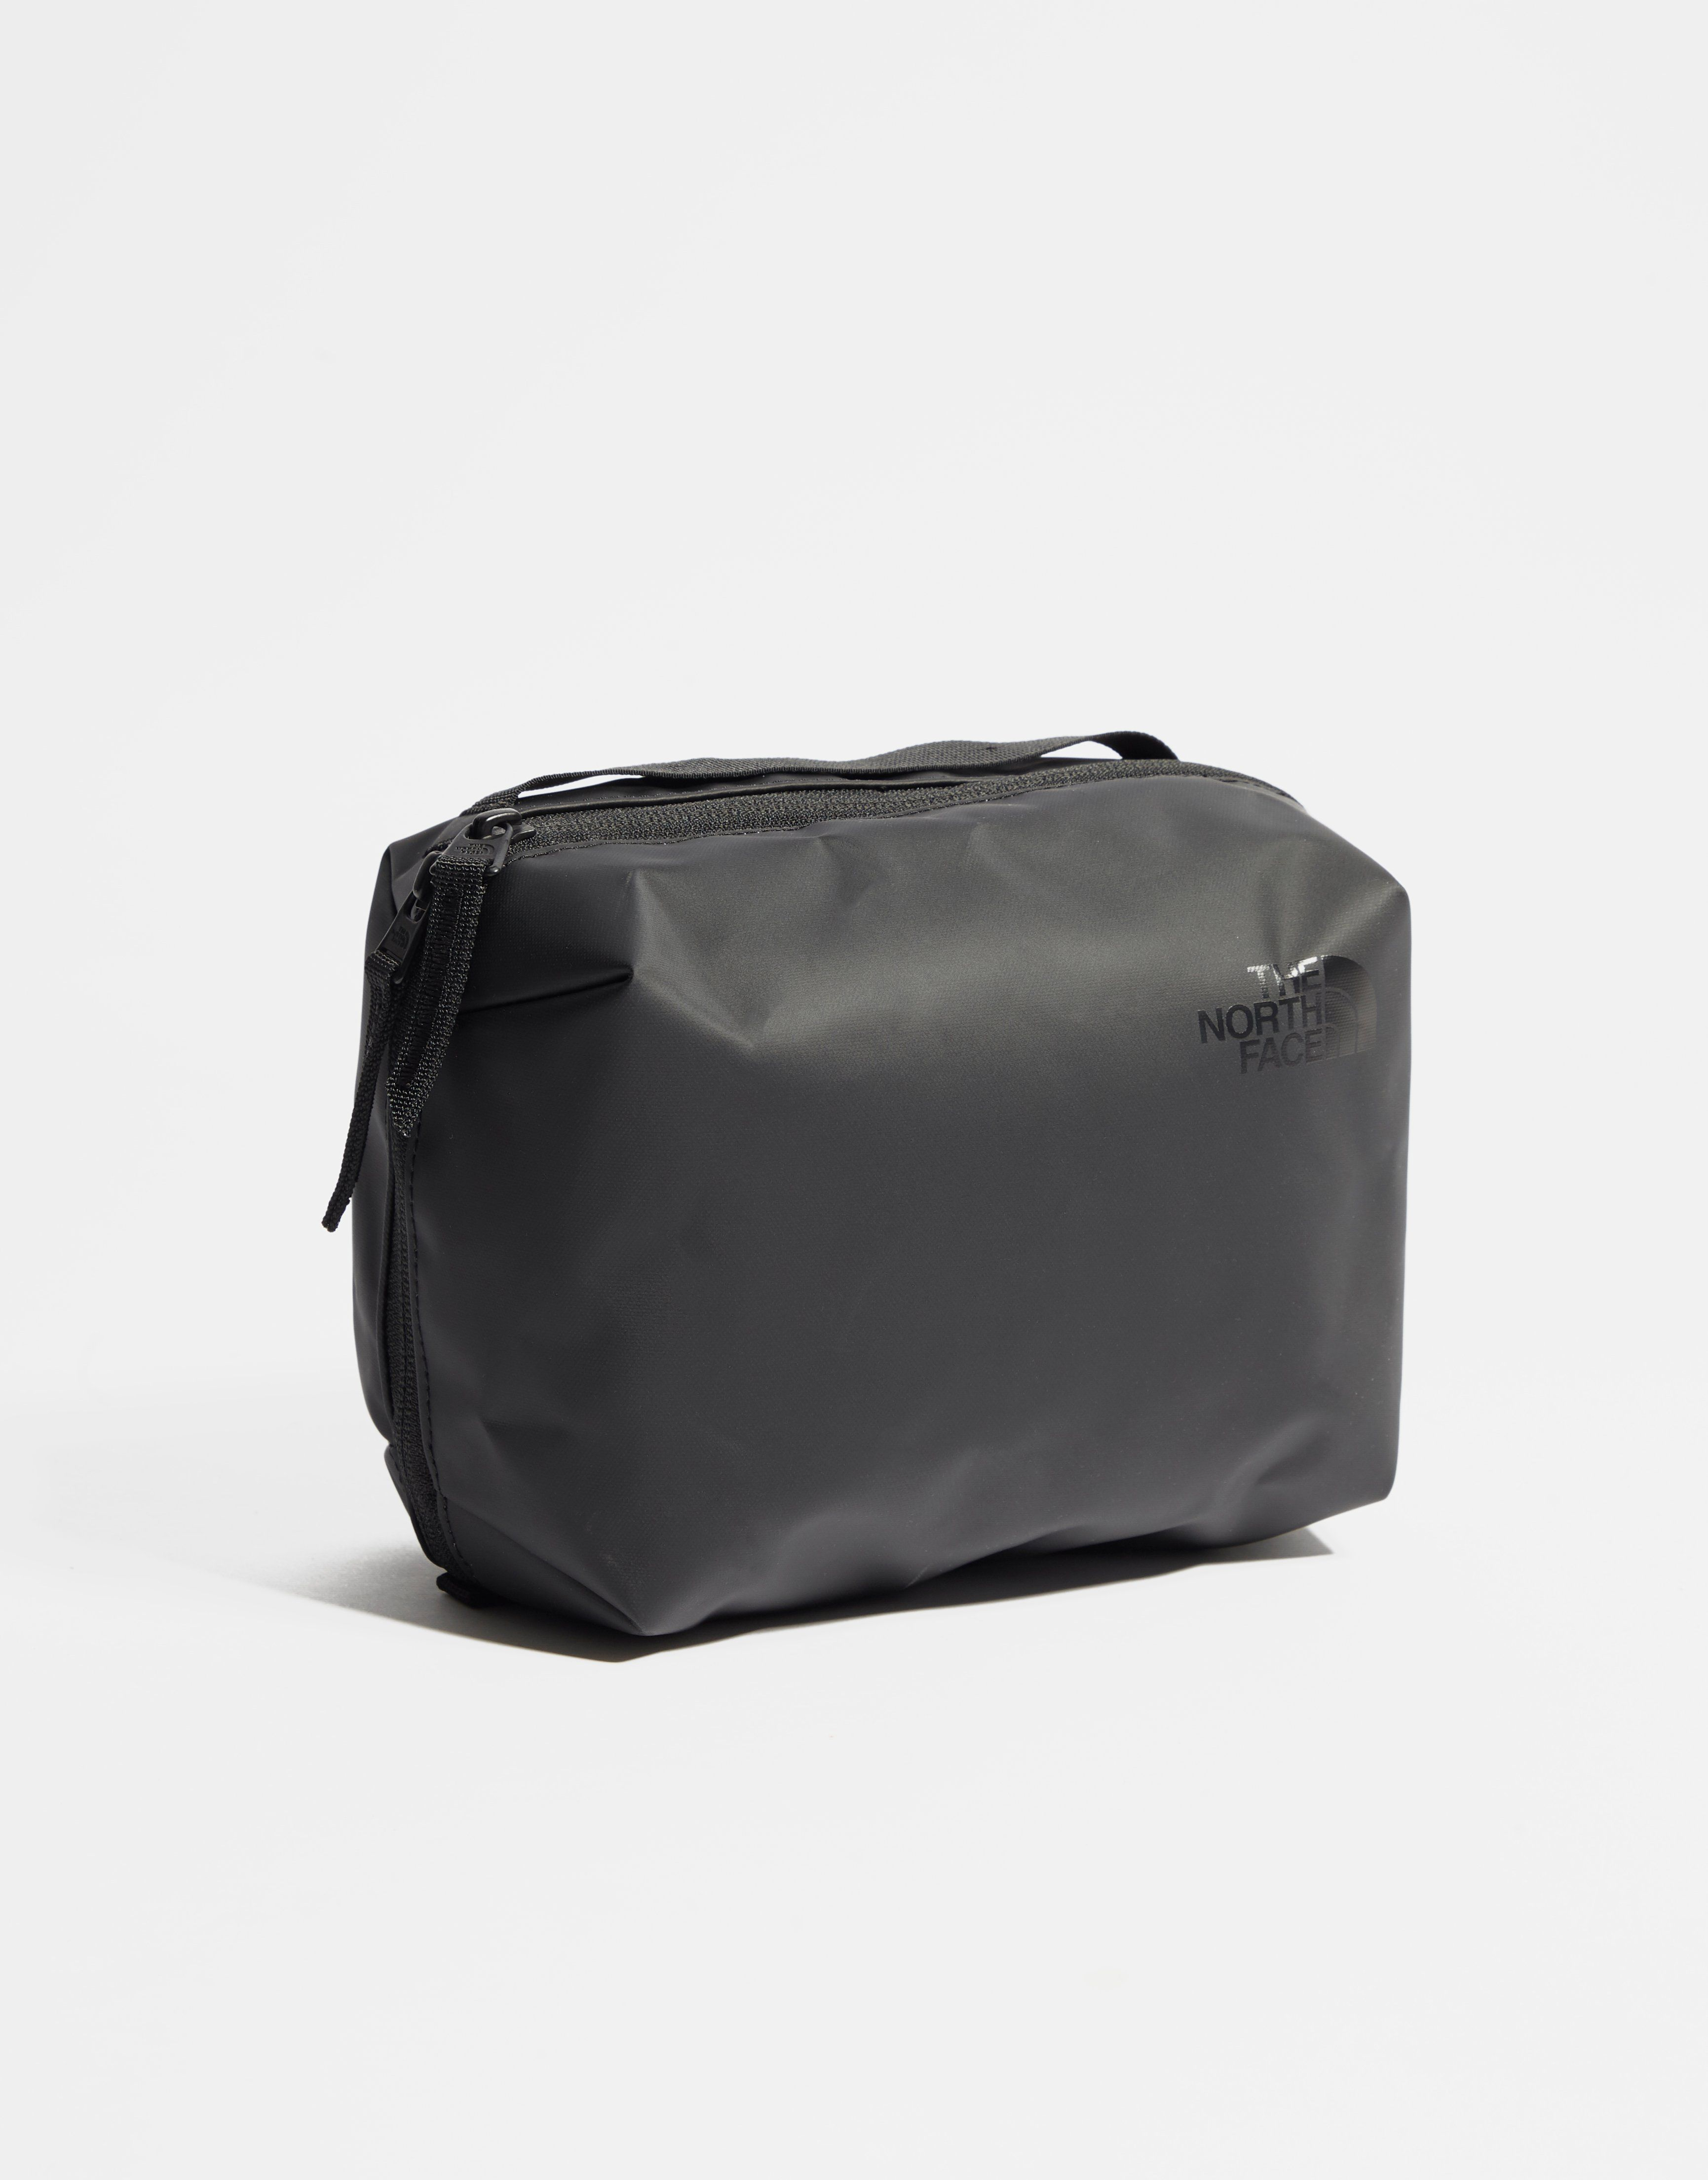 The North Face Stratoliner Wash Bag  10429a89d4c4